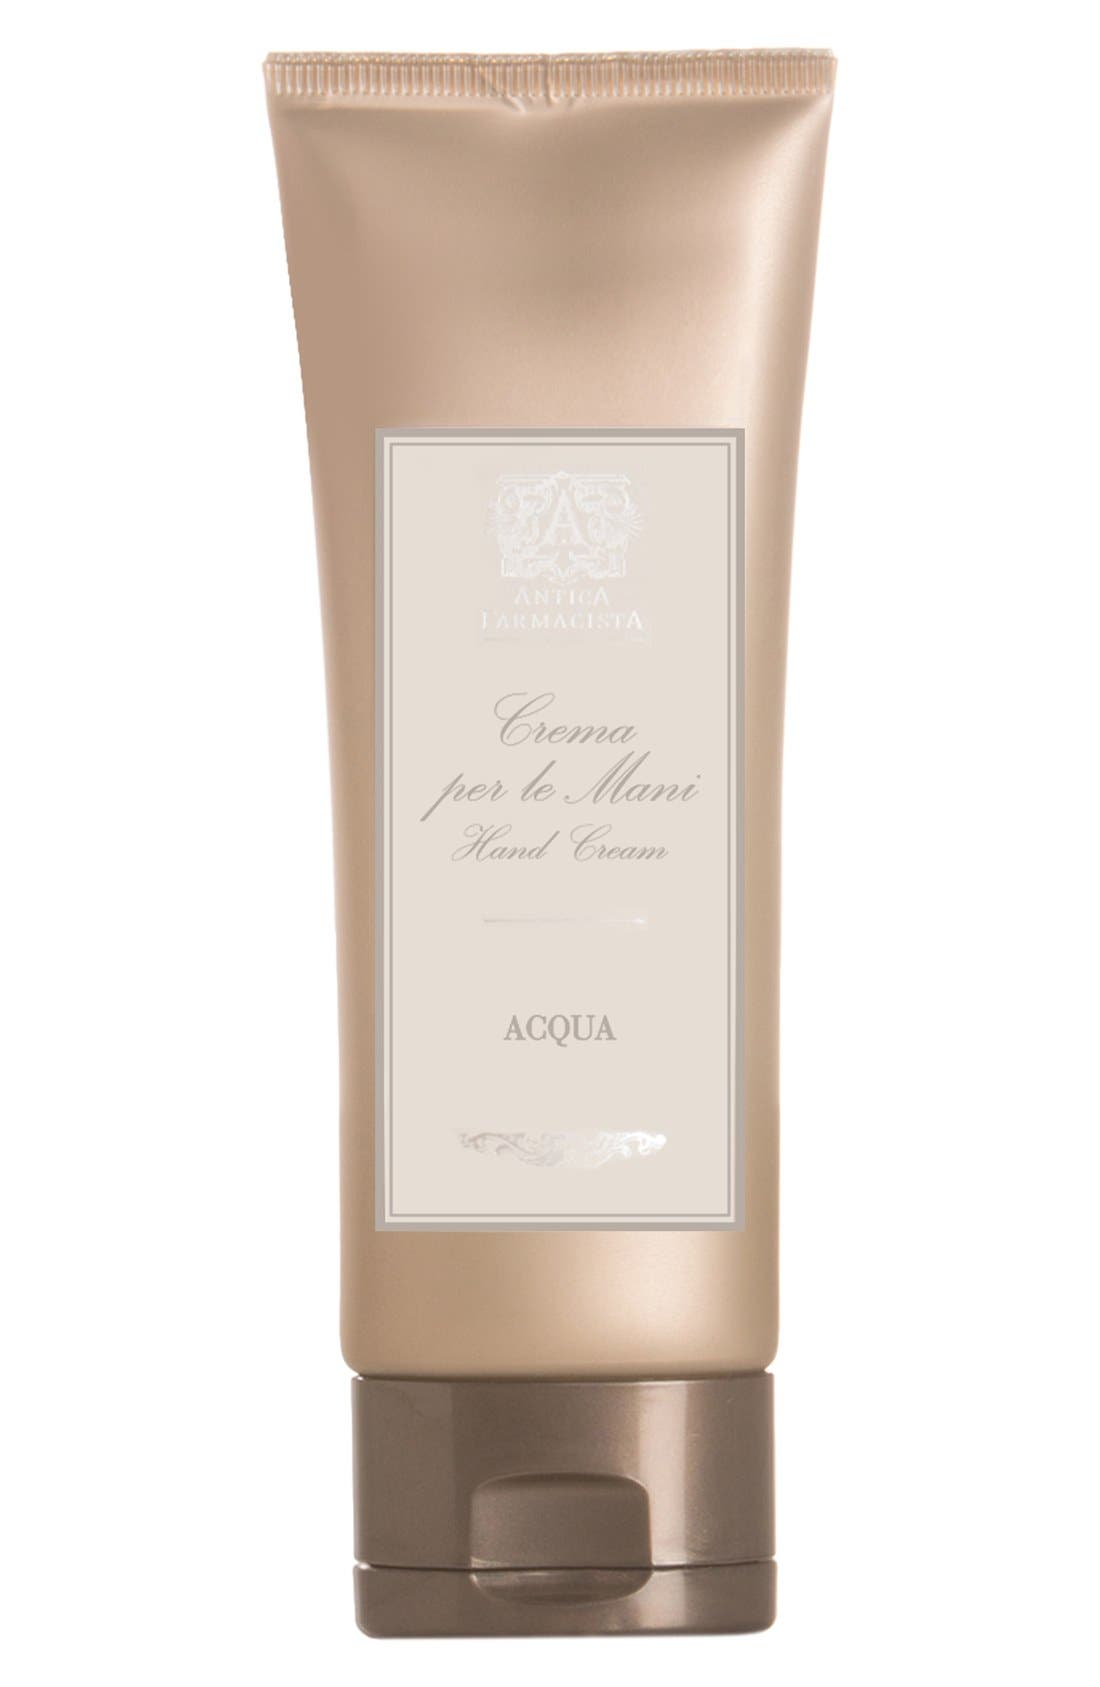 Antica Farmacista 'Acqua' Hand Cream